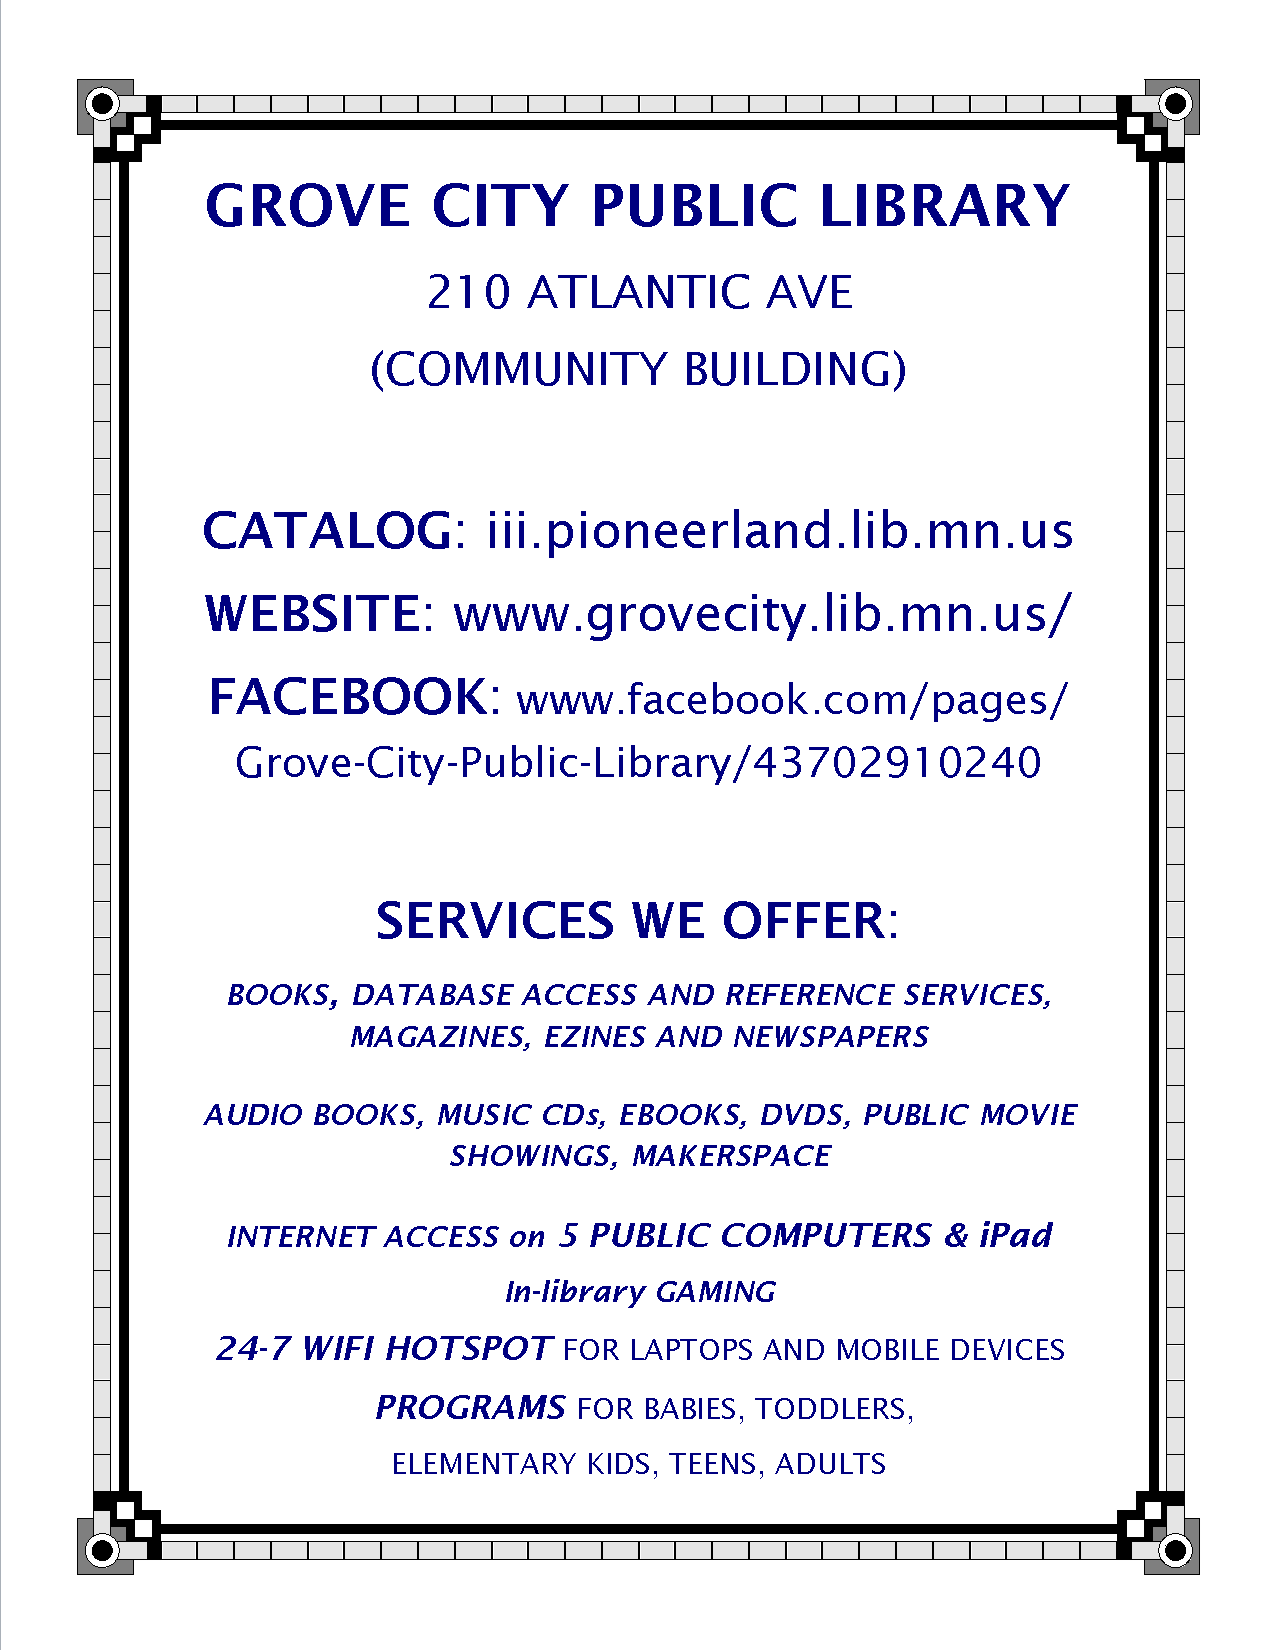 Grove City Library Sign, Services